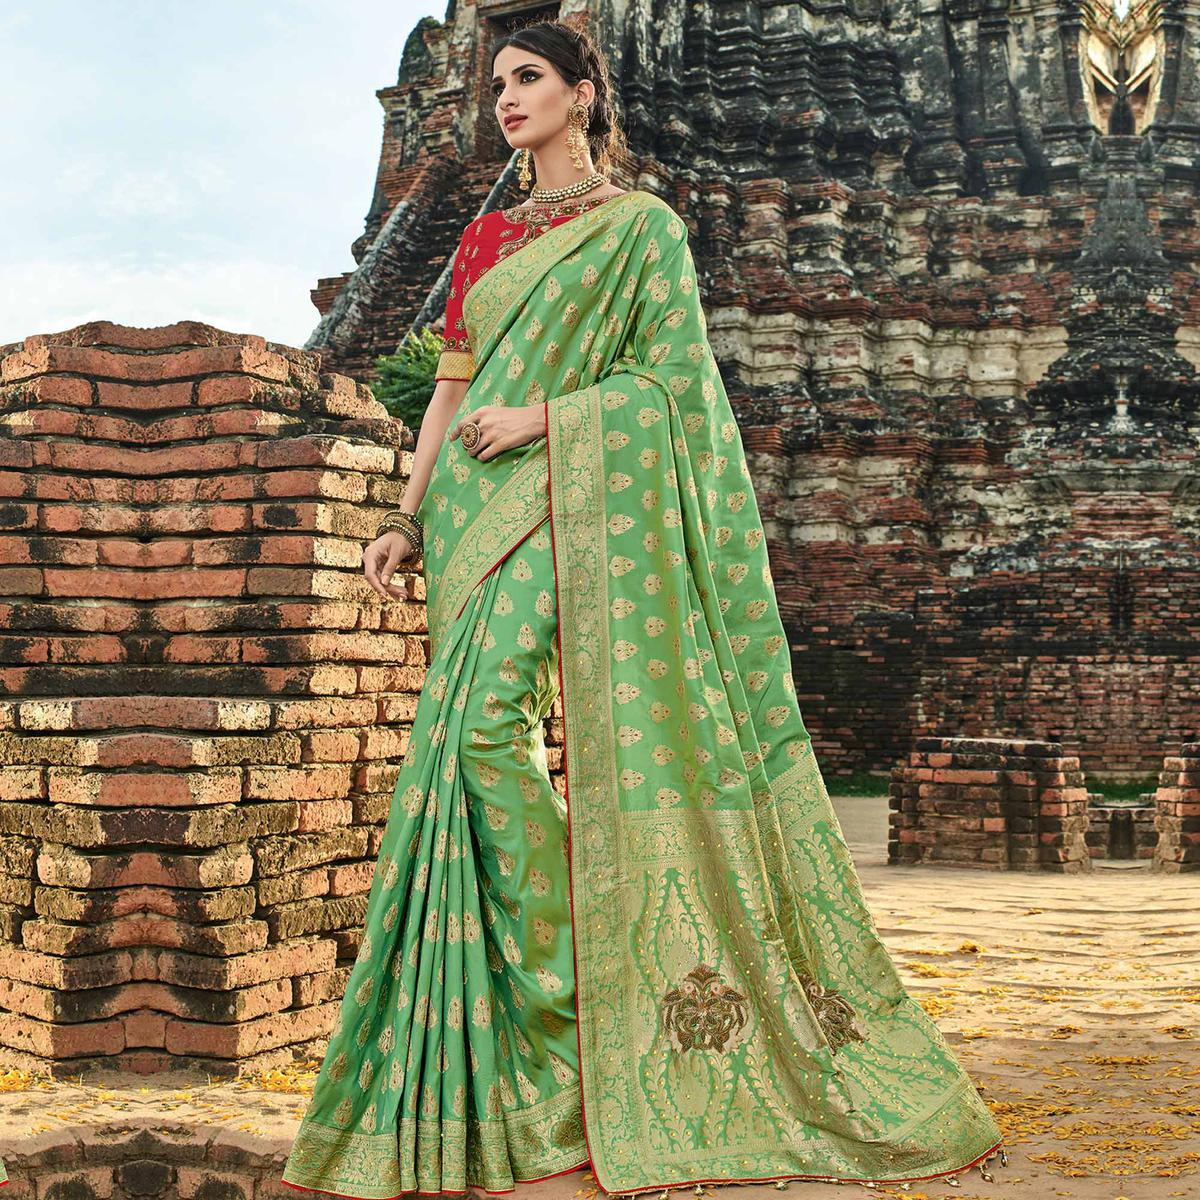 Engrossing Green Colored Festive Wear Woven Banarasi Silk Saree